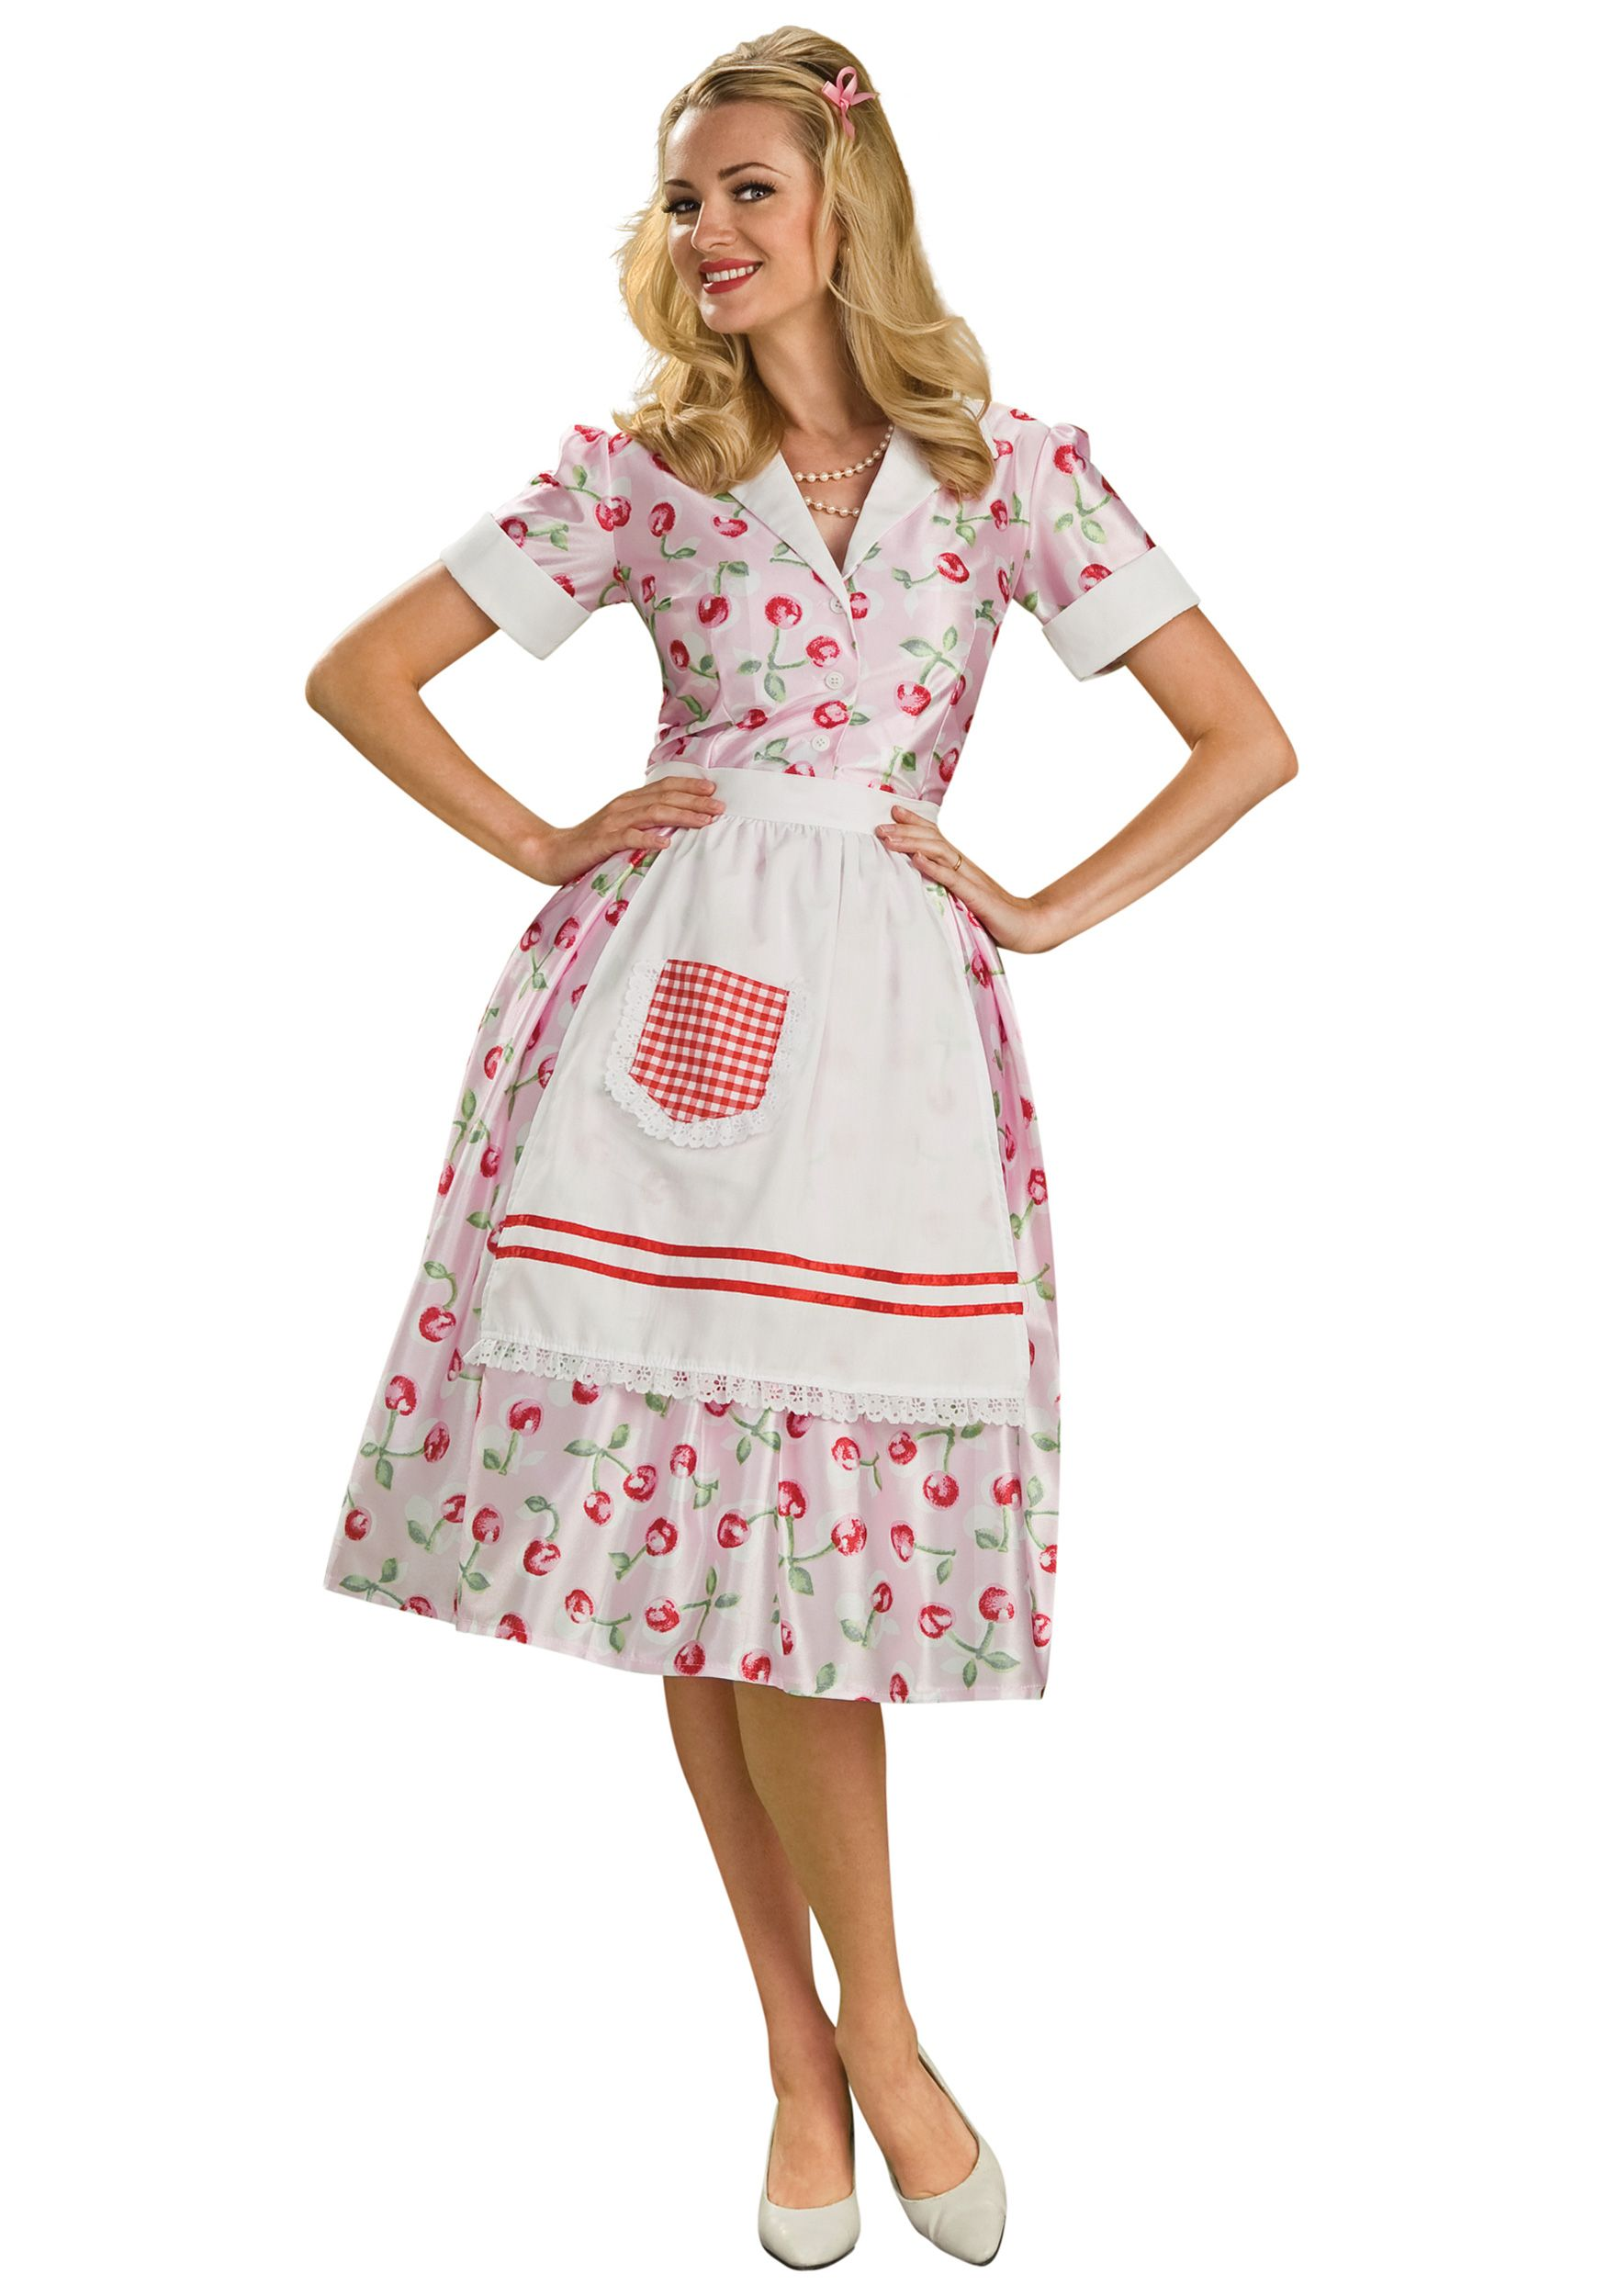 f5f7ce4cd3 50s Housewife- $28.99 so cute! I love this for Mrs. MacAfee or one of the  other moms.